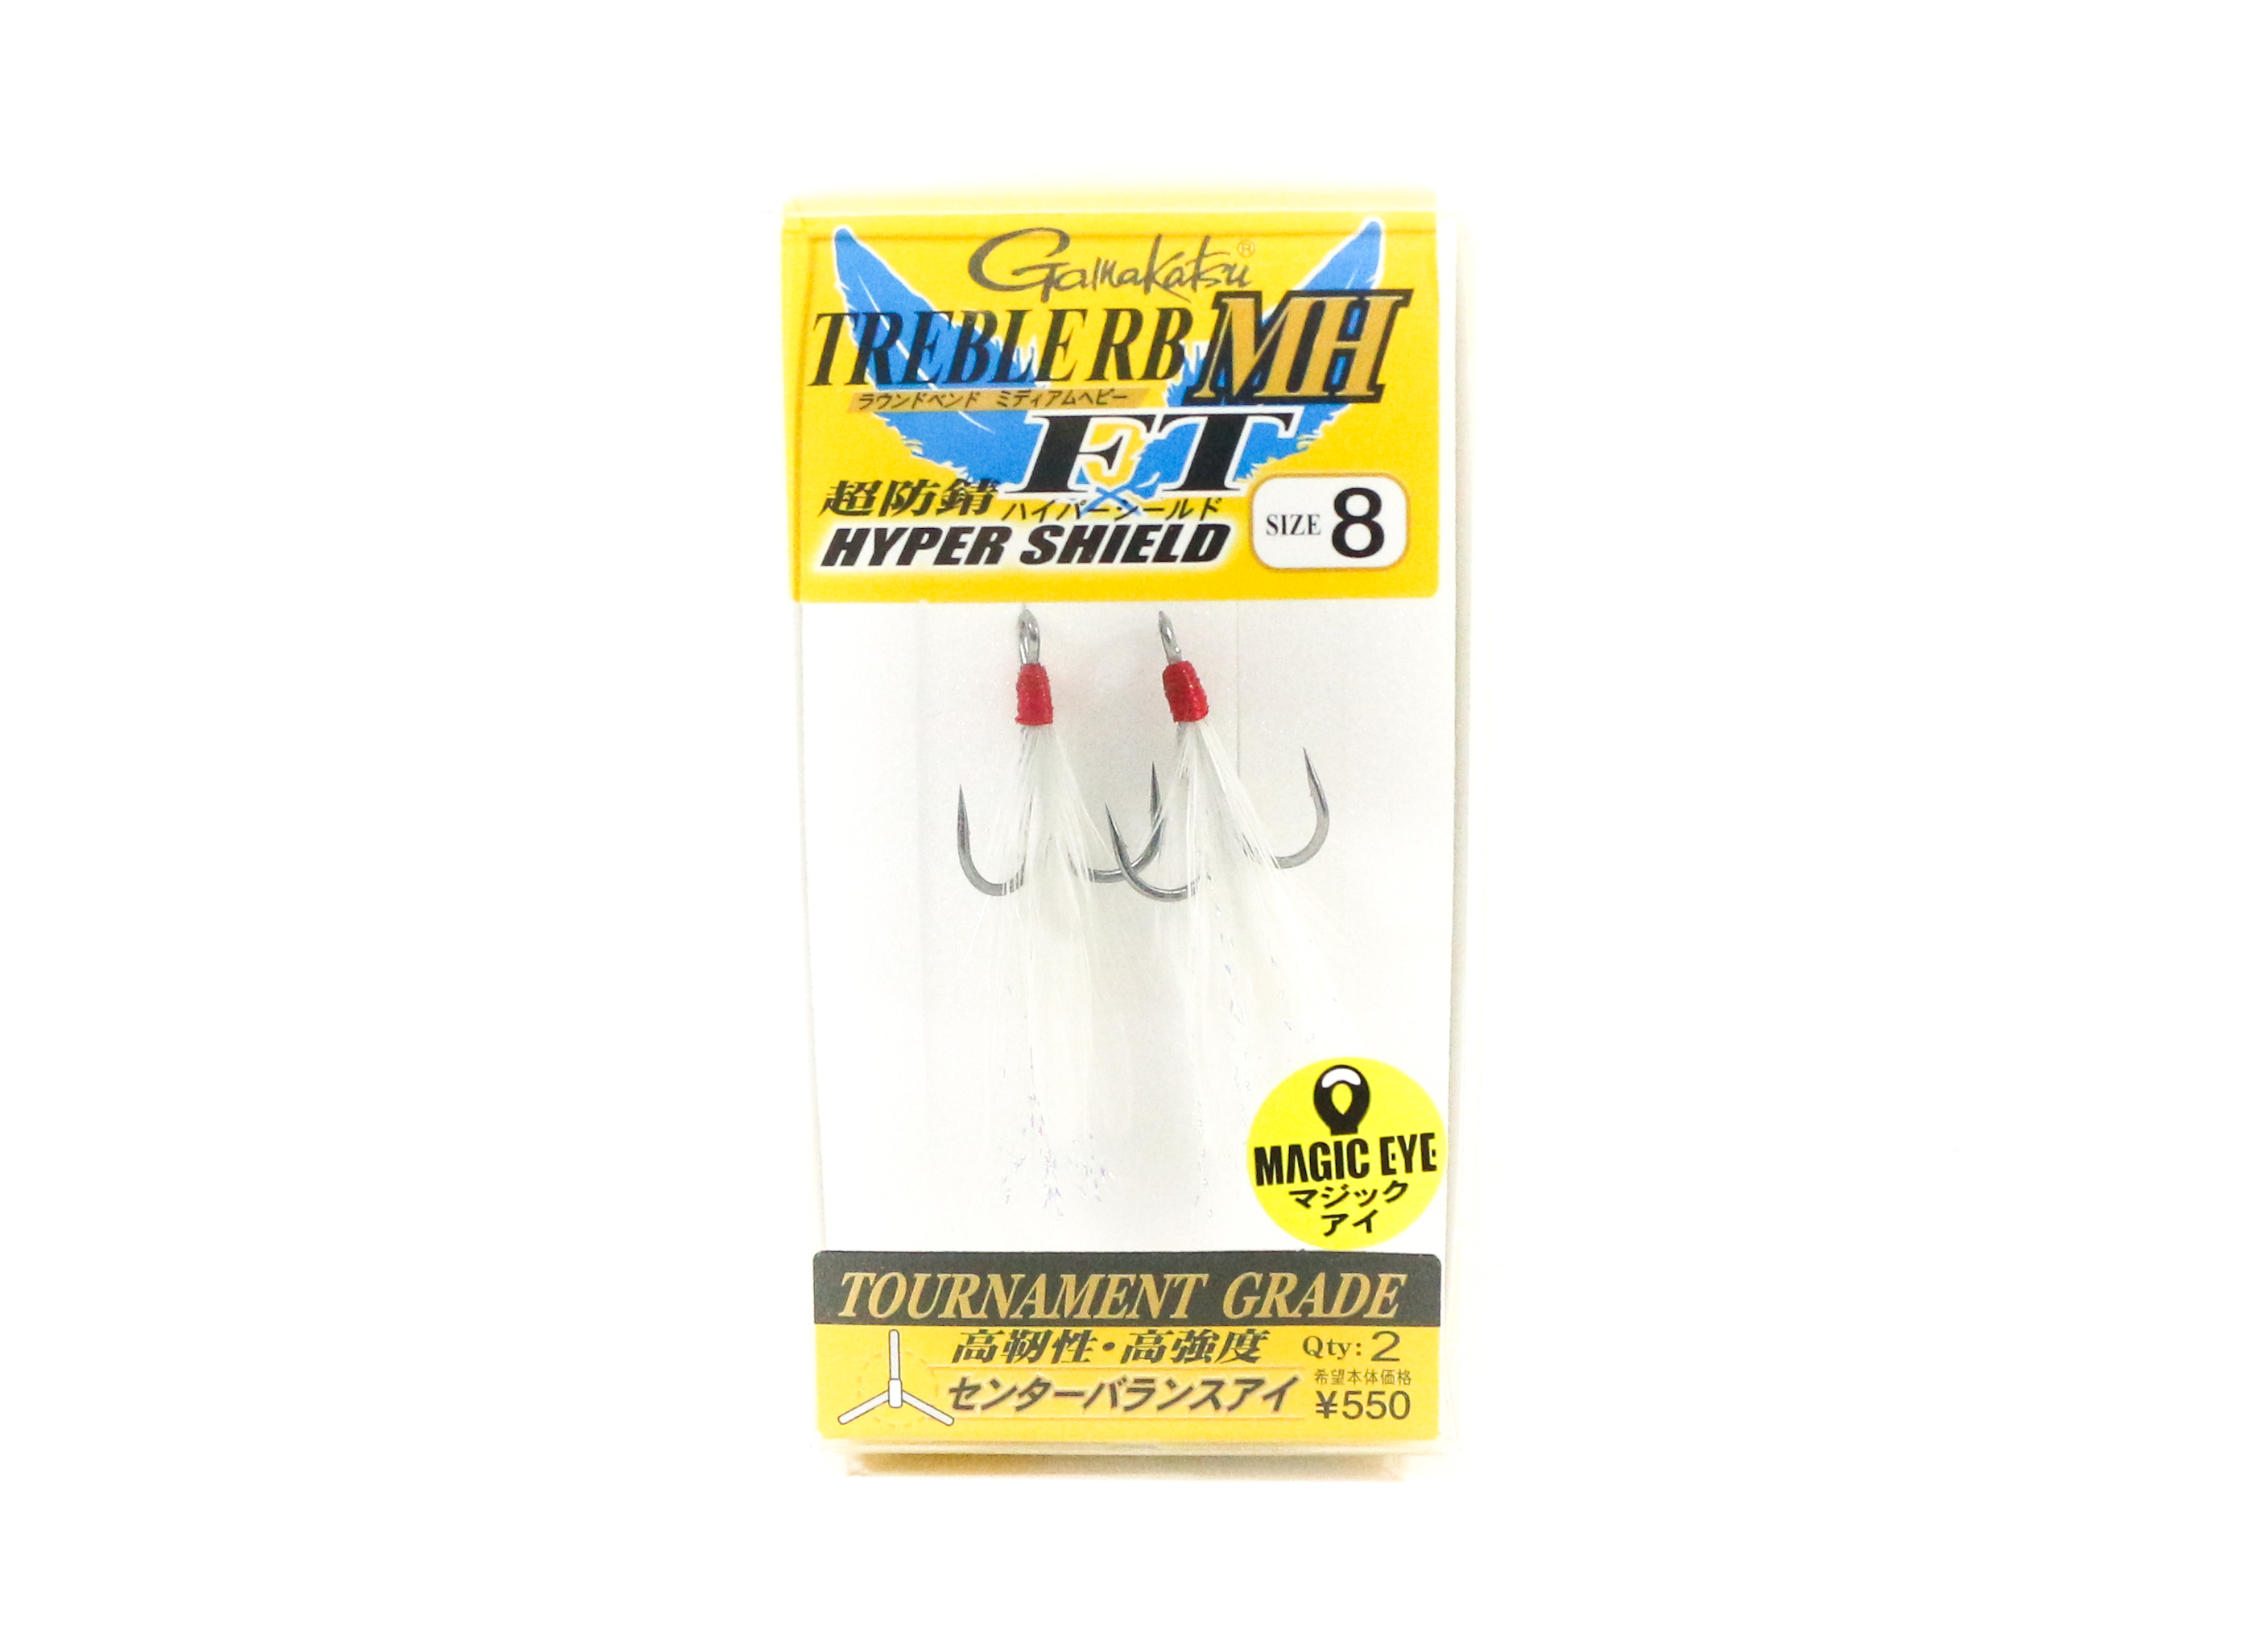 Gamakatsu Treble Hook RB MH FT Feather Hyper Shield Size 8 (3837)